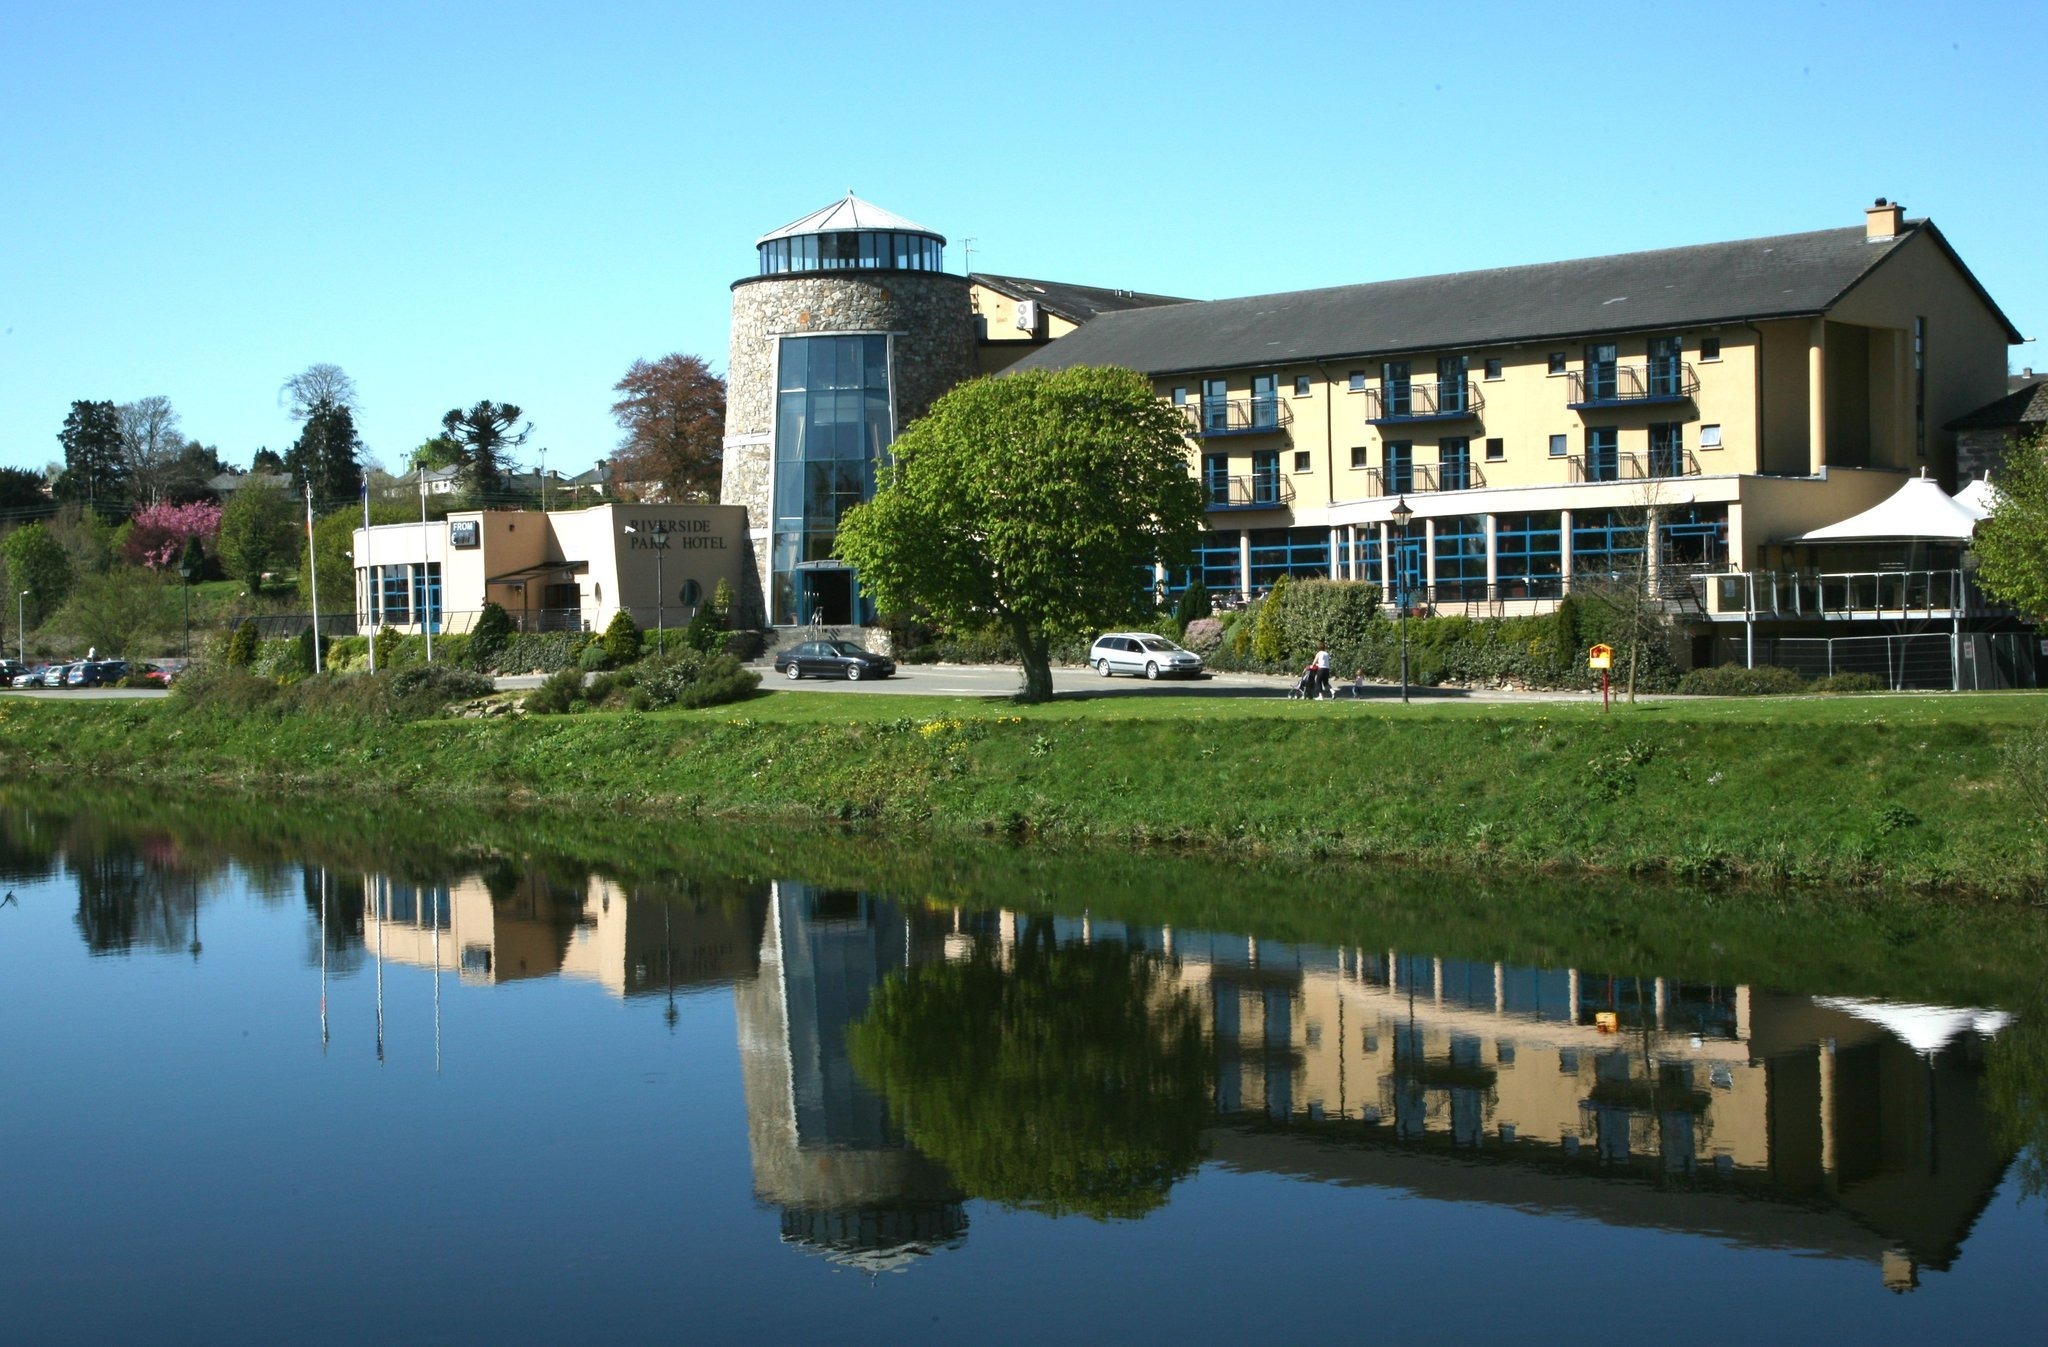 The Riverside Park Hotel & Leisure Club